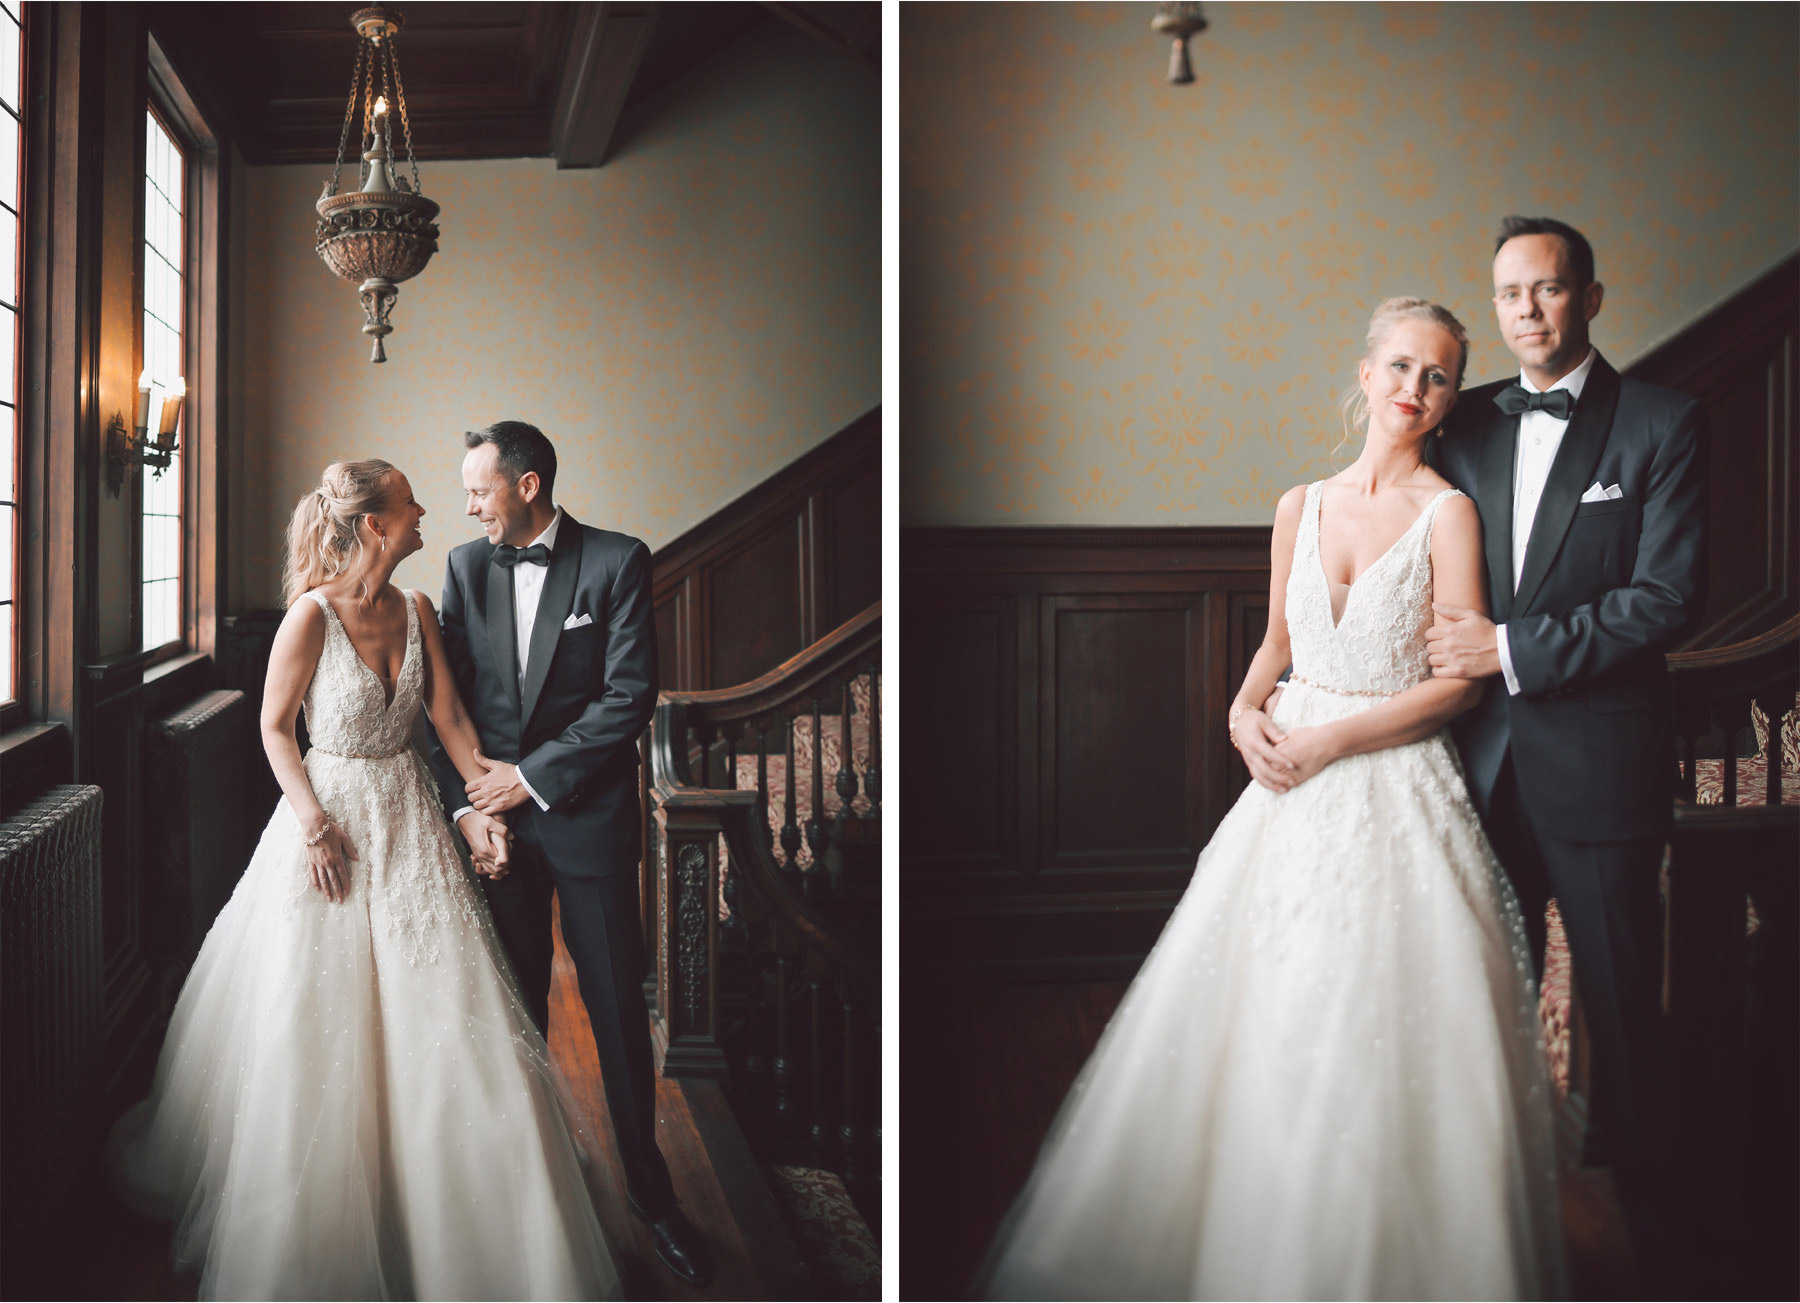 04-Minneapolis-Wedding-Photography-by-Vick-Semple-Mansion-Stairs-First-Look-Abby-and-Jason.jpg